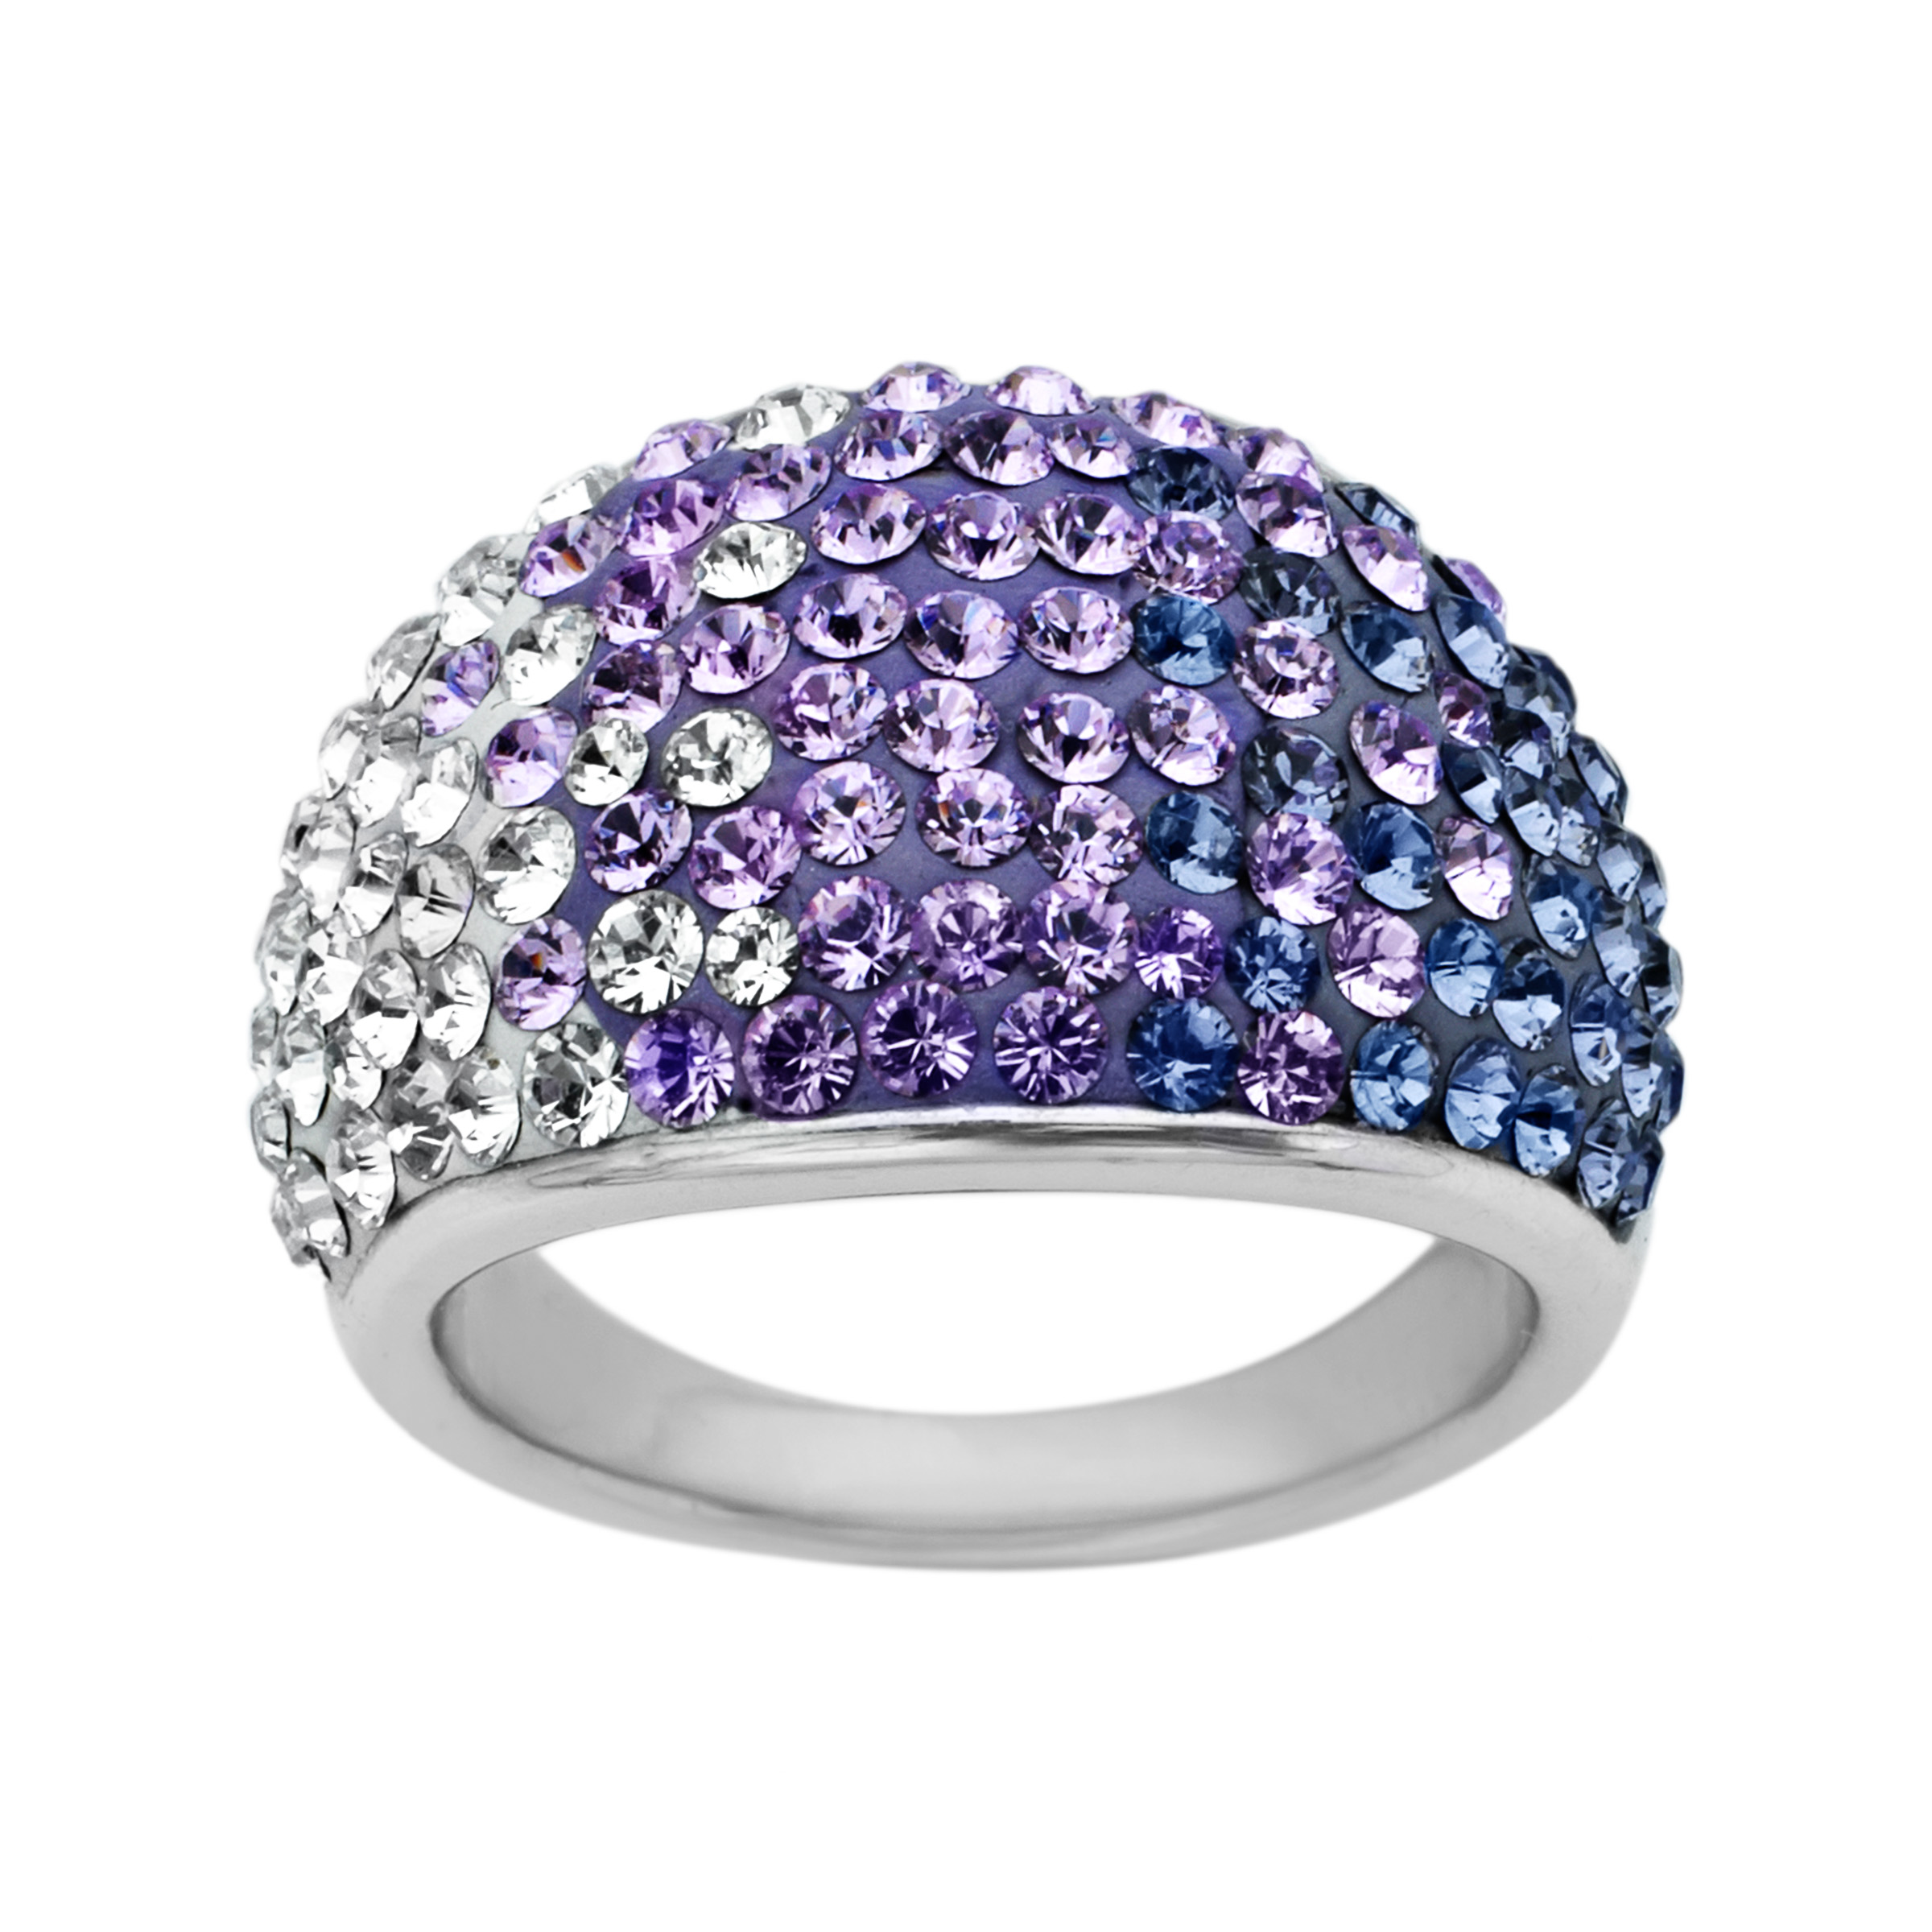 Crystaluxe Dome Ring with Purple-Lavender-White Fade Swarovski Crystals in Sterling Silver